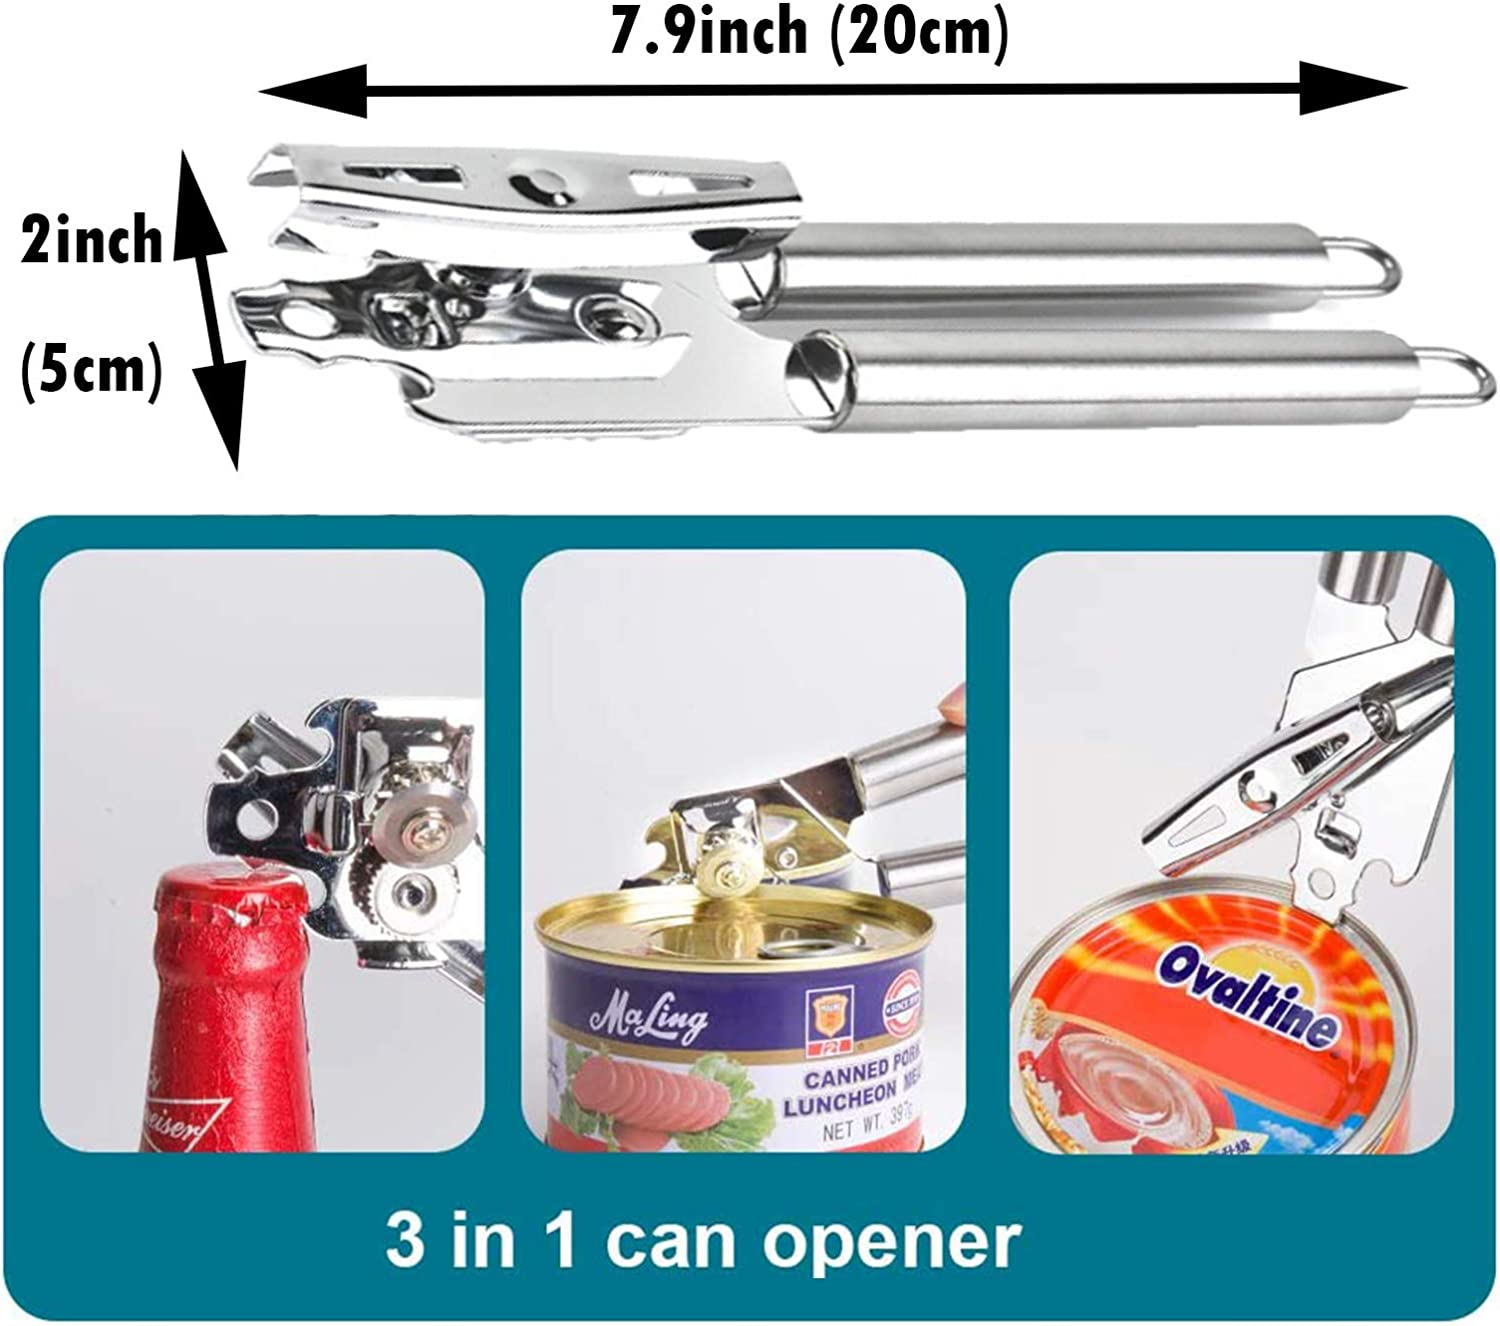 8 in 1 Can Opener Use Effortless and Safe with Smooth Edges ...